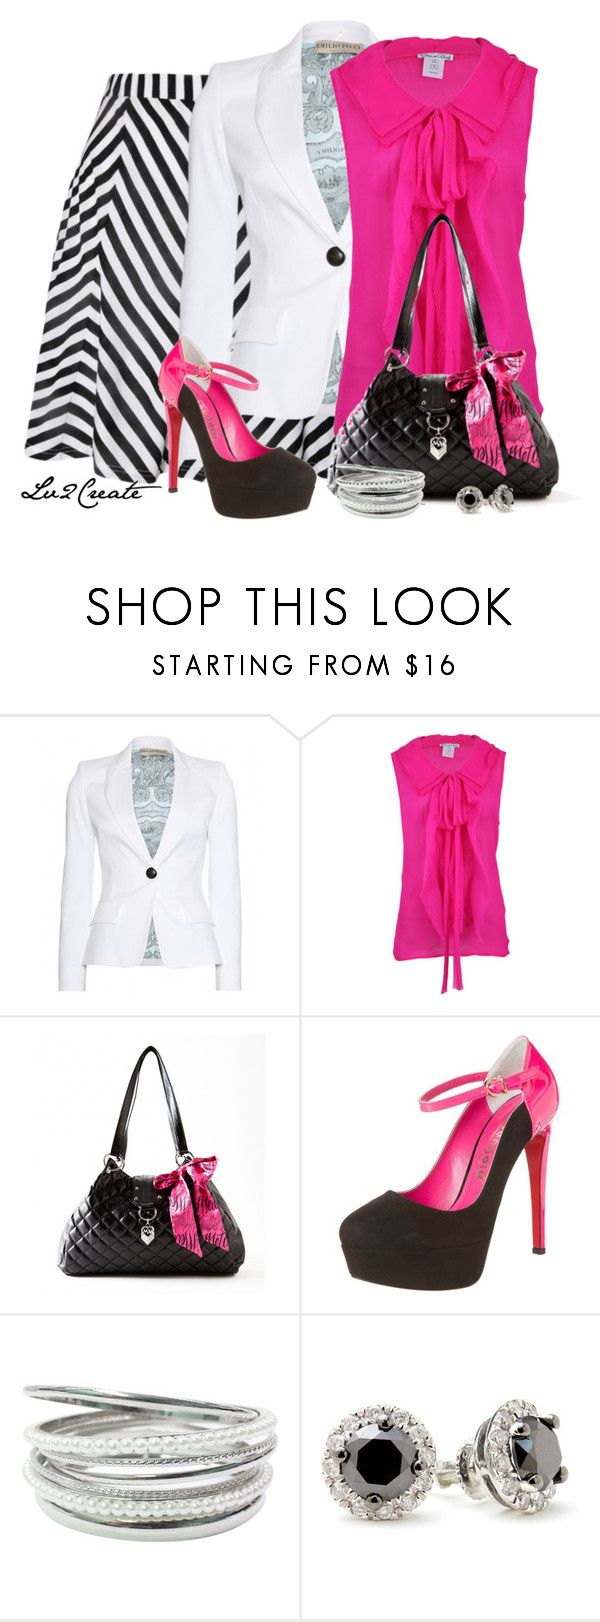 """""""Chevron Stripes with neon"""" by lv2create ❤ liked on Polyvore featuring Ella Moss, Emilio Pucci, Oscar de la Renta and FERSENGOLD"""